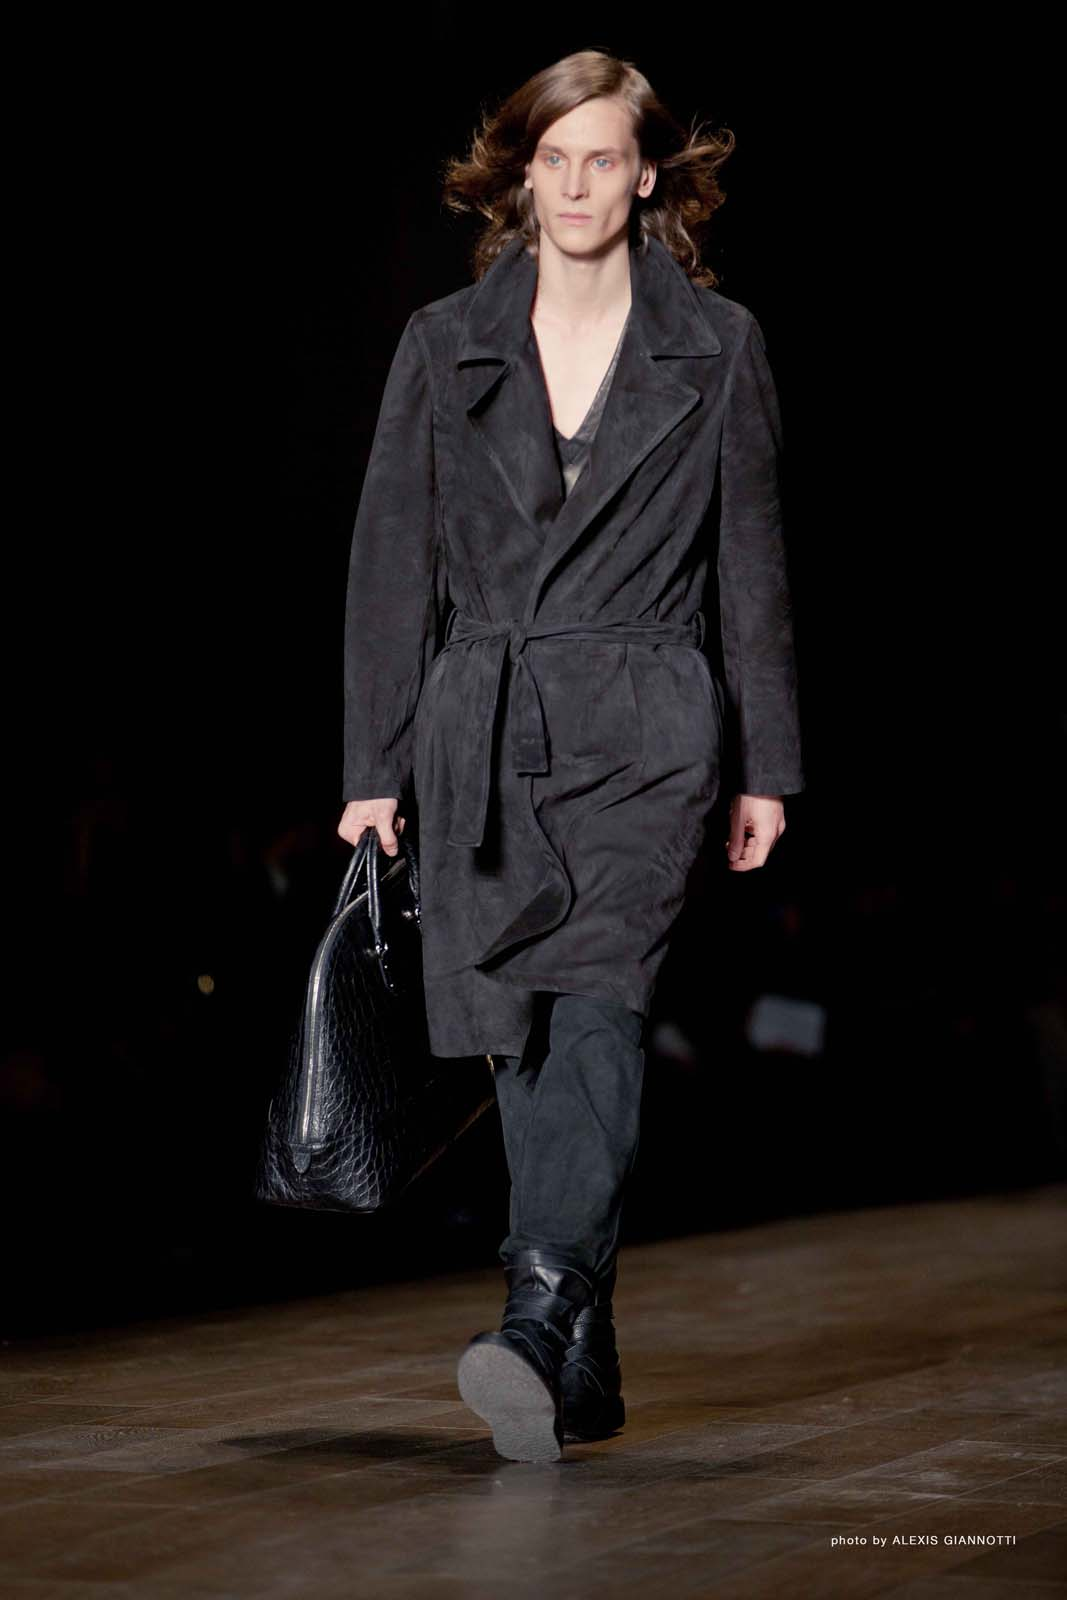 Trussardi 1911 Men's Collection Fall Winter 2011-2012 - Pitti